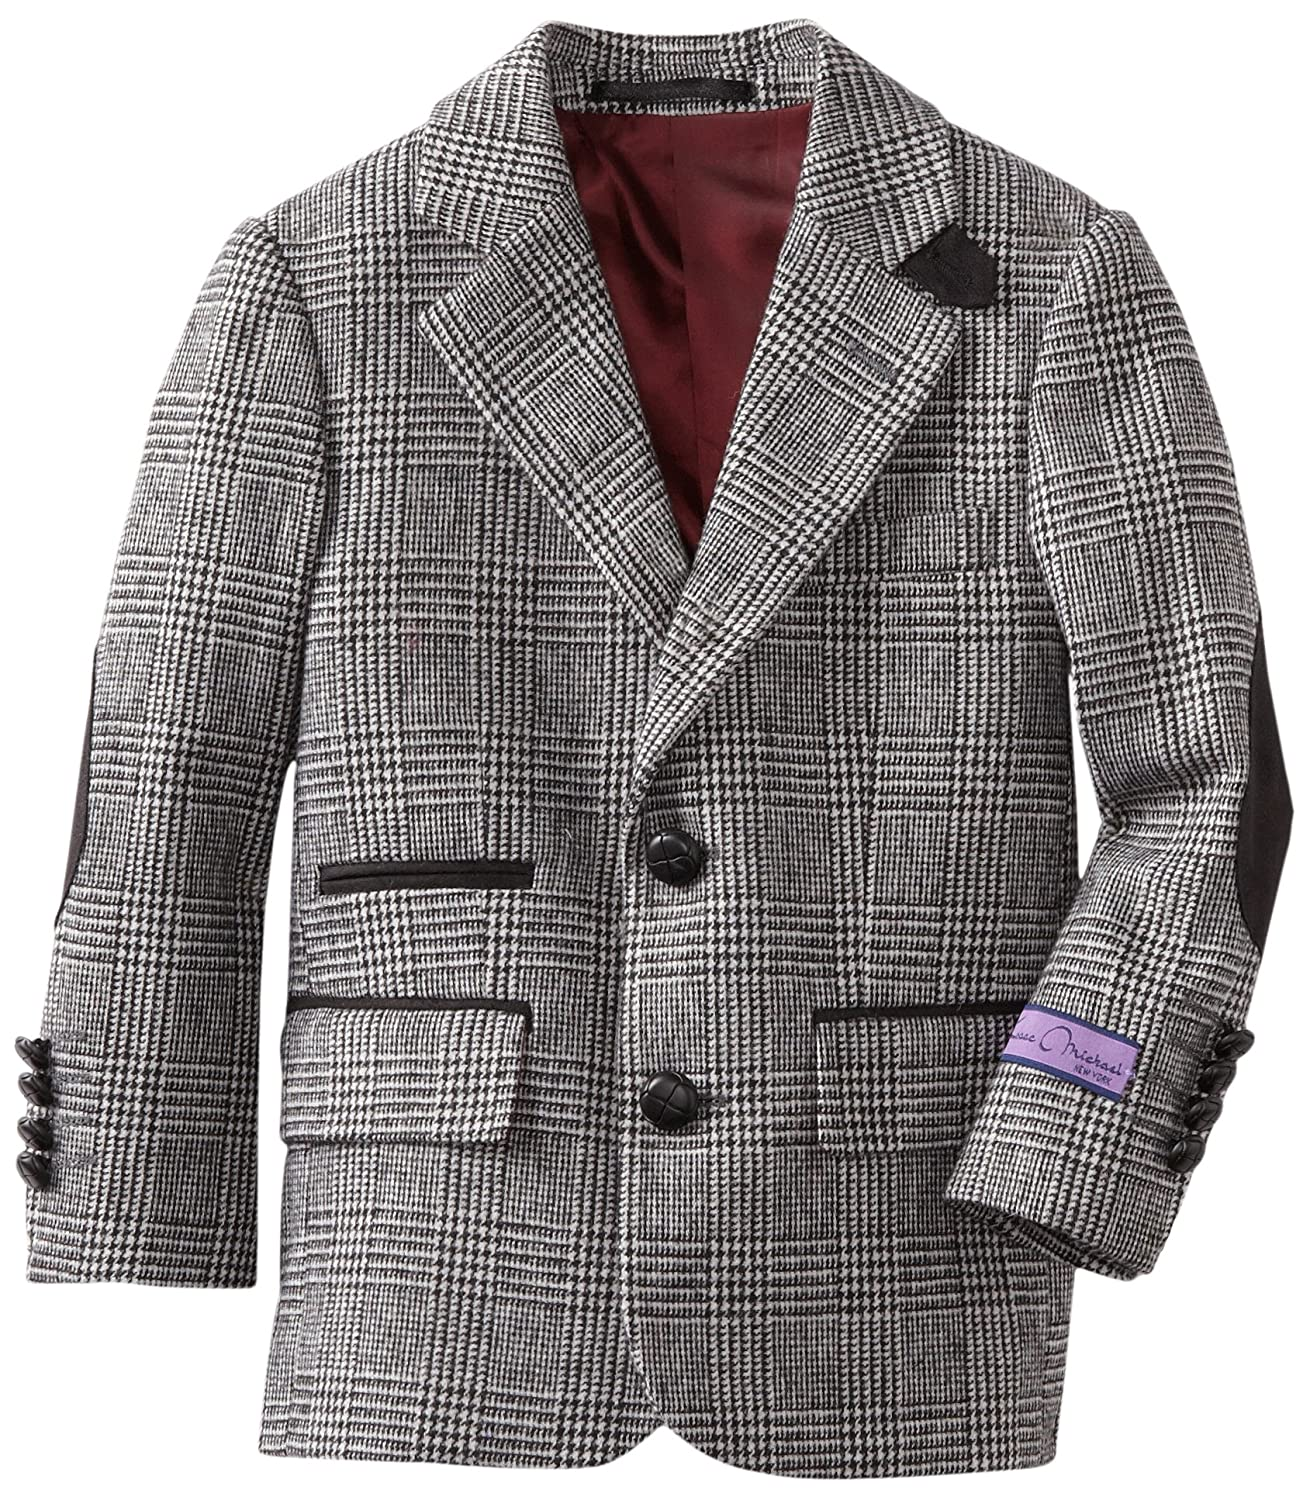 Isaac Michael Big Boys Tonal-Plaid Blazer Jacket Isaac Michael Boys 8-20 8011B